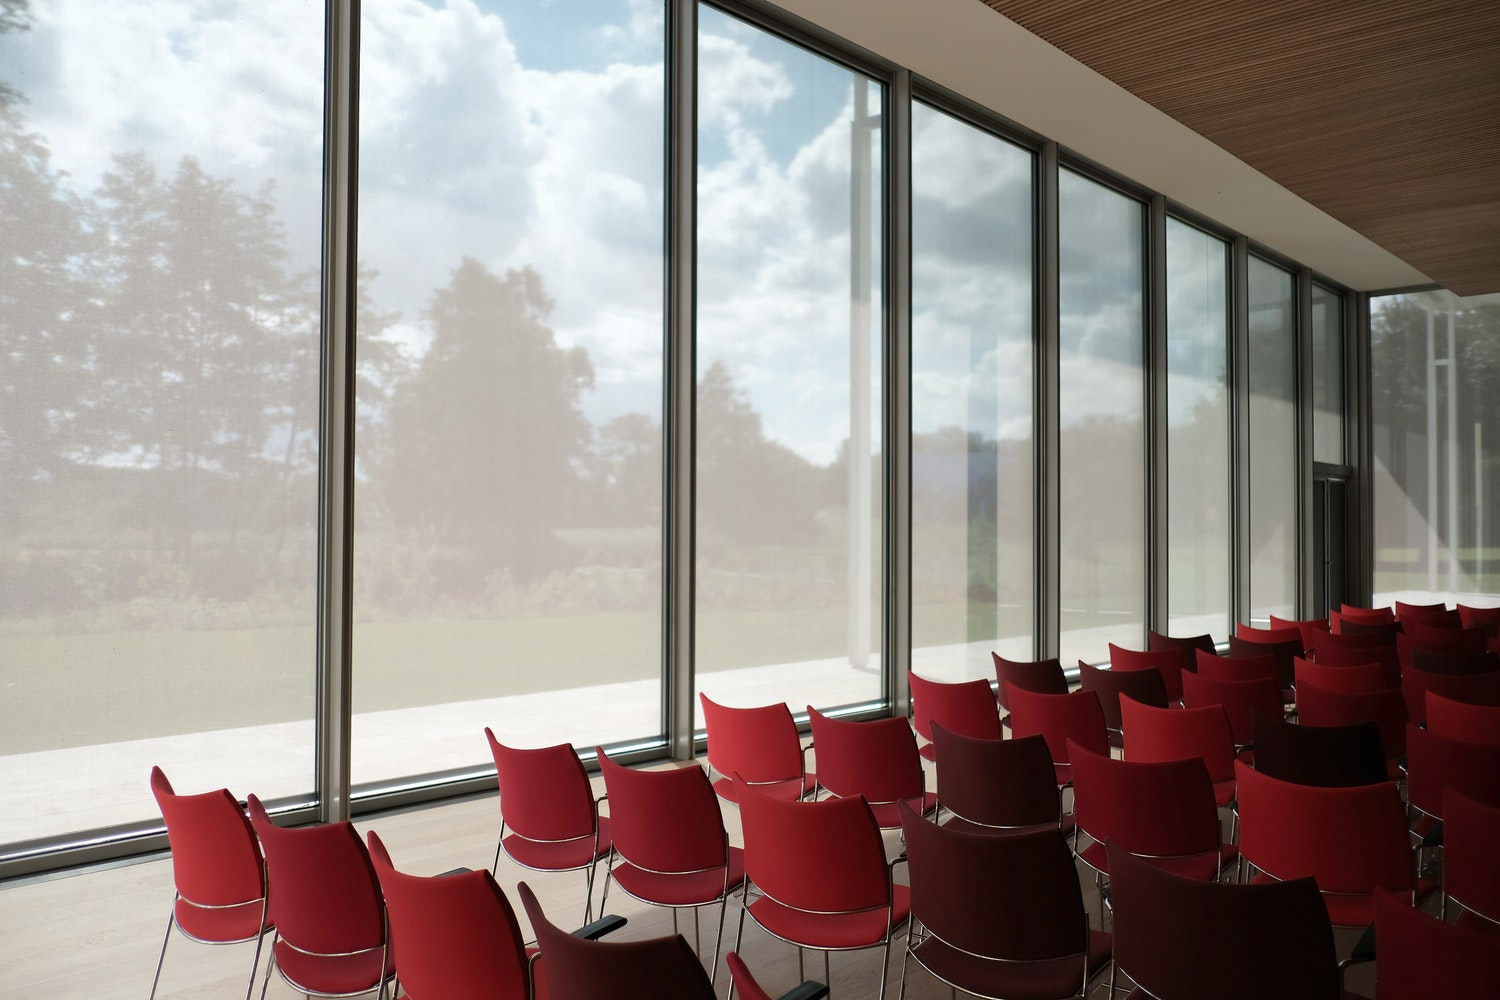 Classroom with large windows and an open sky